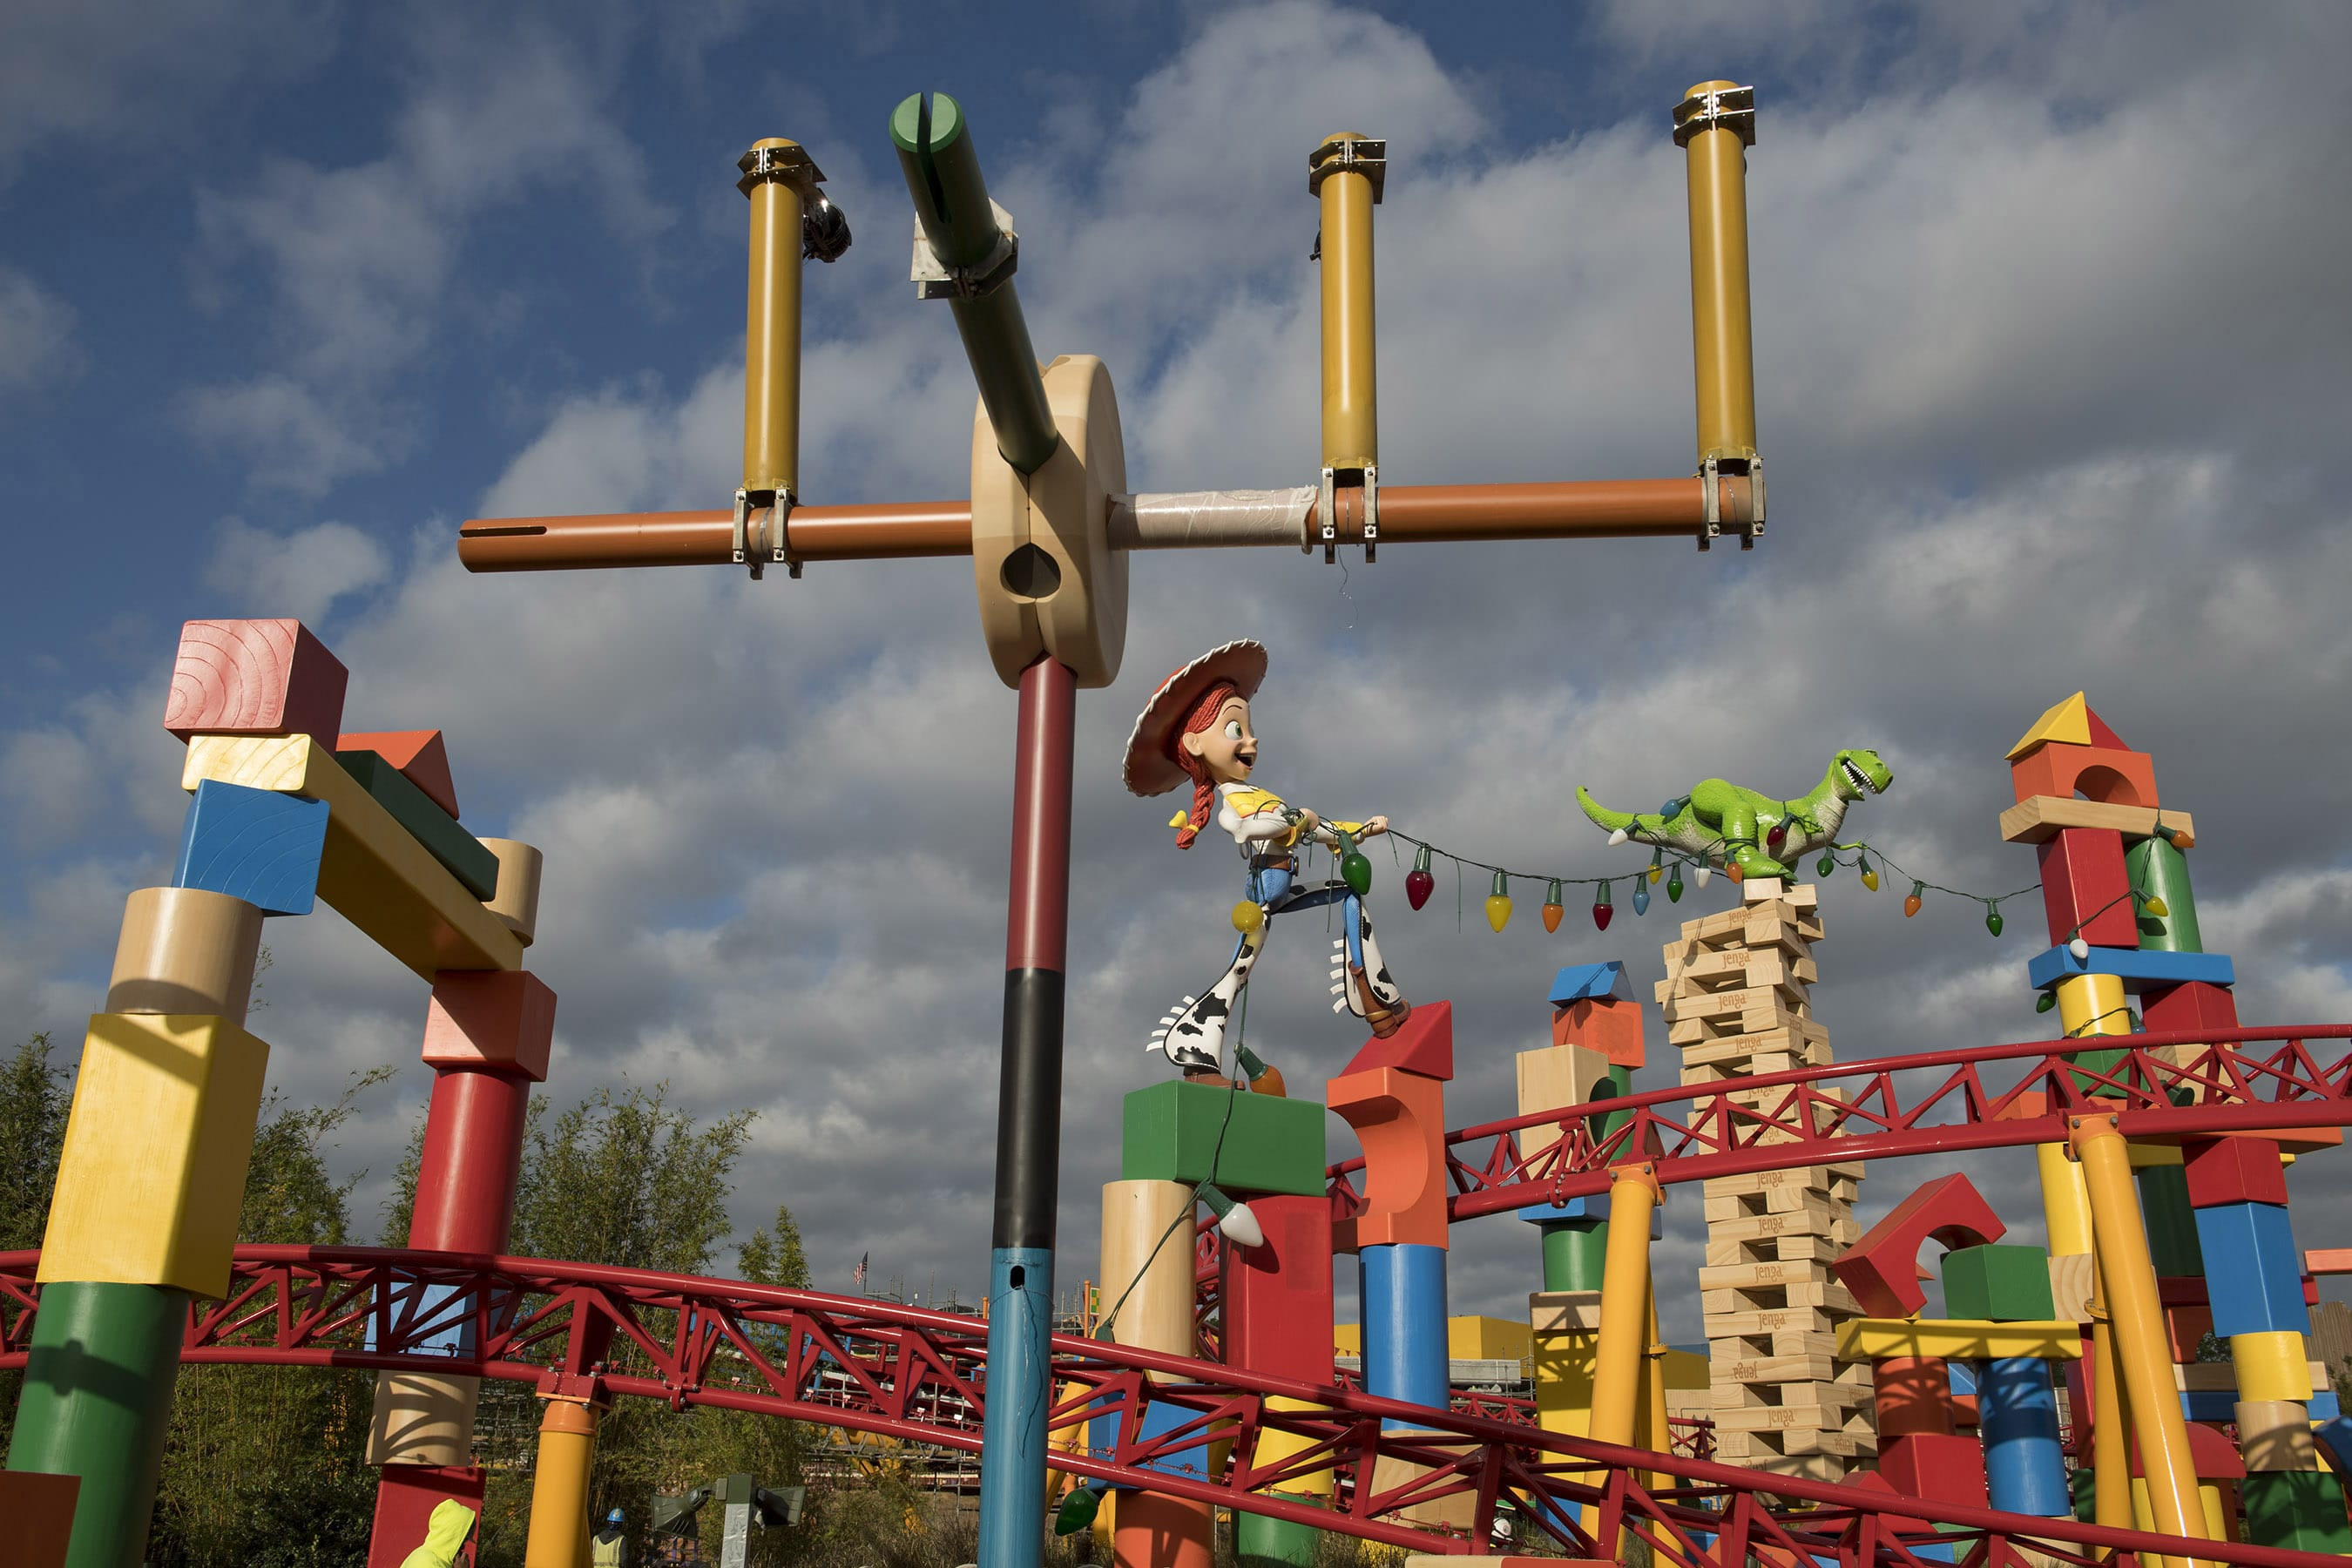 TOY STORY LAND AT WALT DISNEY WORLD RESORT (LAKE BUENA VISTA, Fla.) – Development continues on Toy Story Land, which will open June 30 at Walt Disney World Resort in Florida. Located at Disney's Hollywood Studios, this new 11-acre land will invite guests to play in the setting of Andy's backyard. Guests will whoosh along on Slinky Dog Dash, a family-friendly roller coaster, take a spin aboard Alien Swirling Saucers and score high on the midway at Toy Story Mania! (David Roark, photographer)